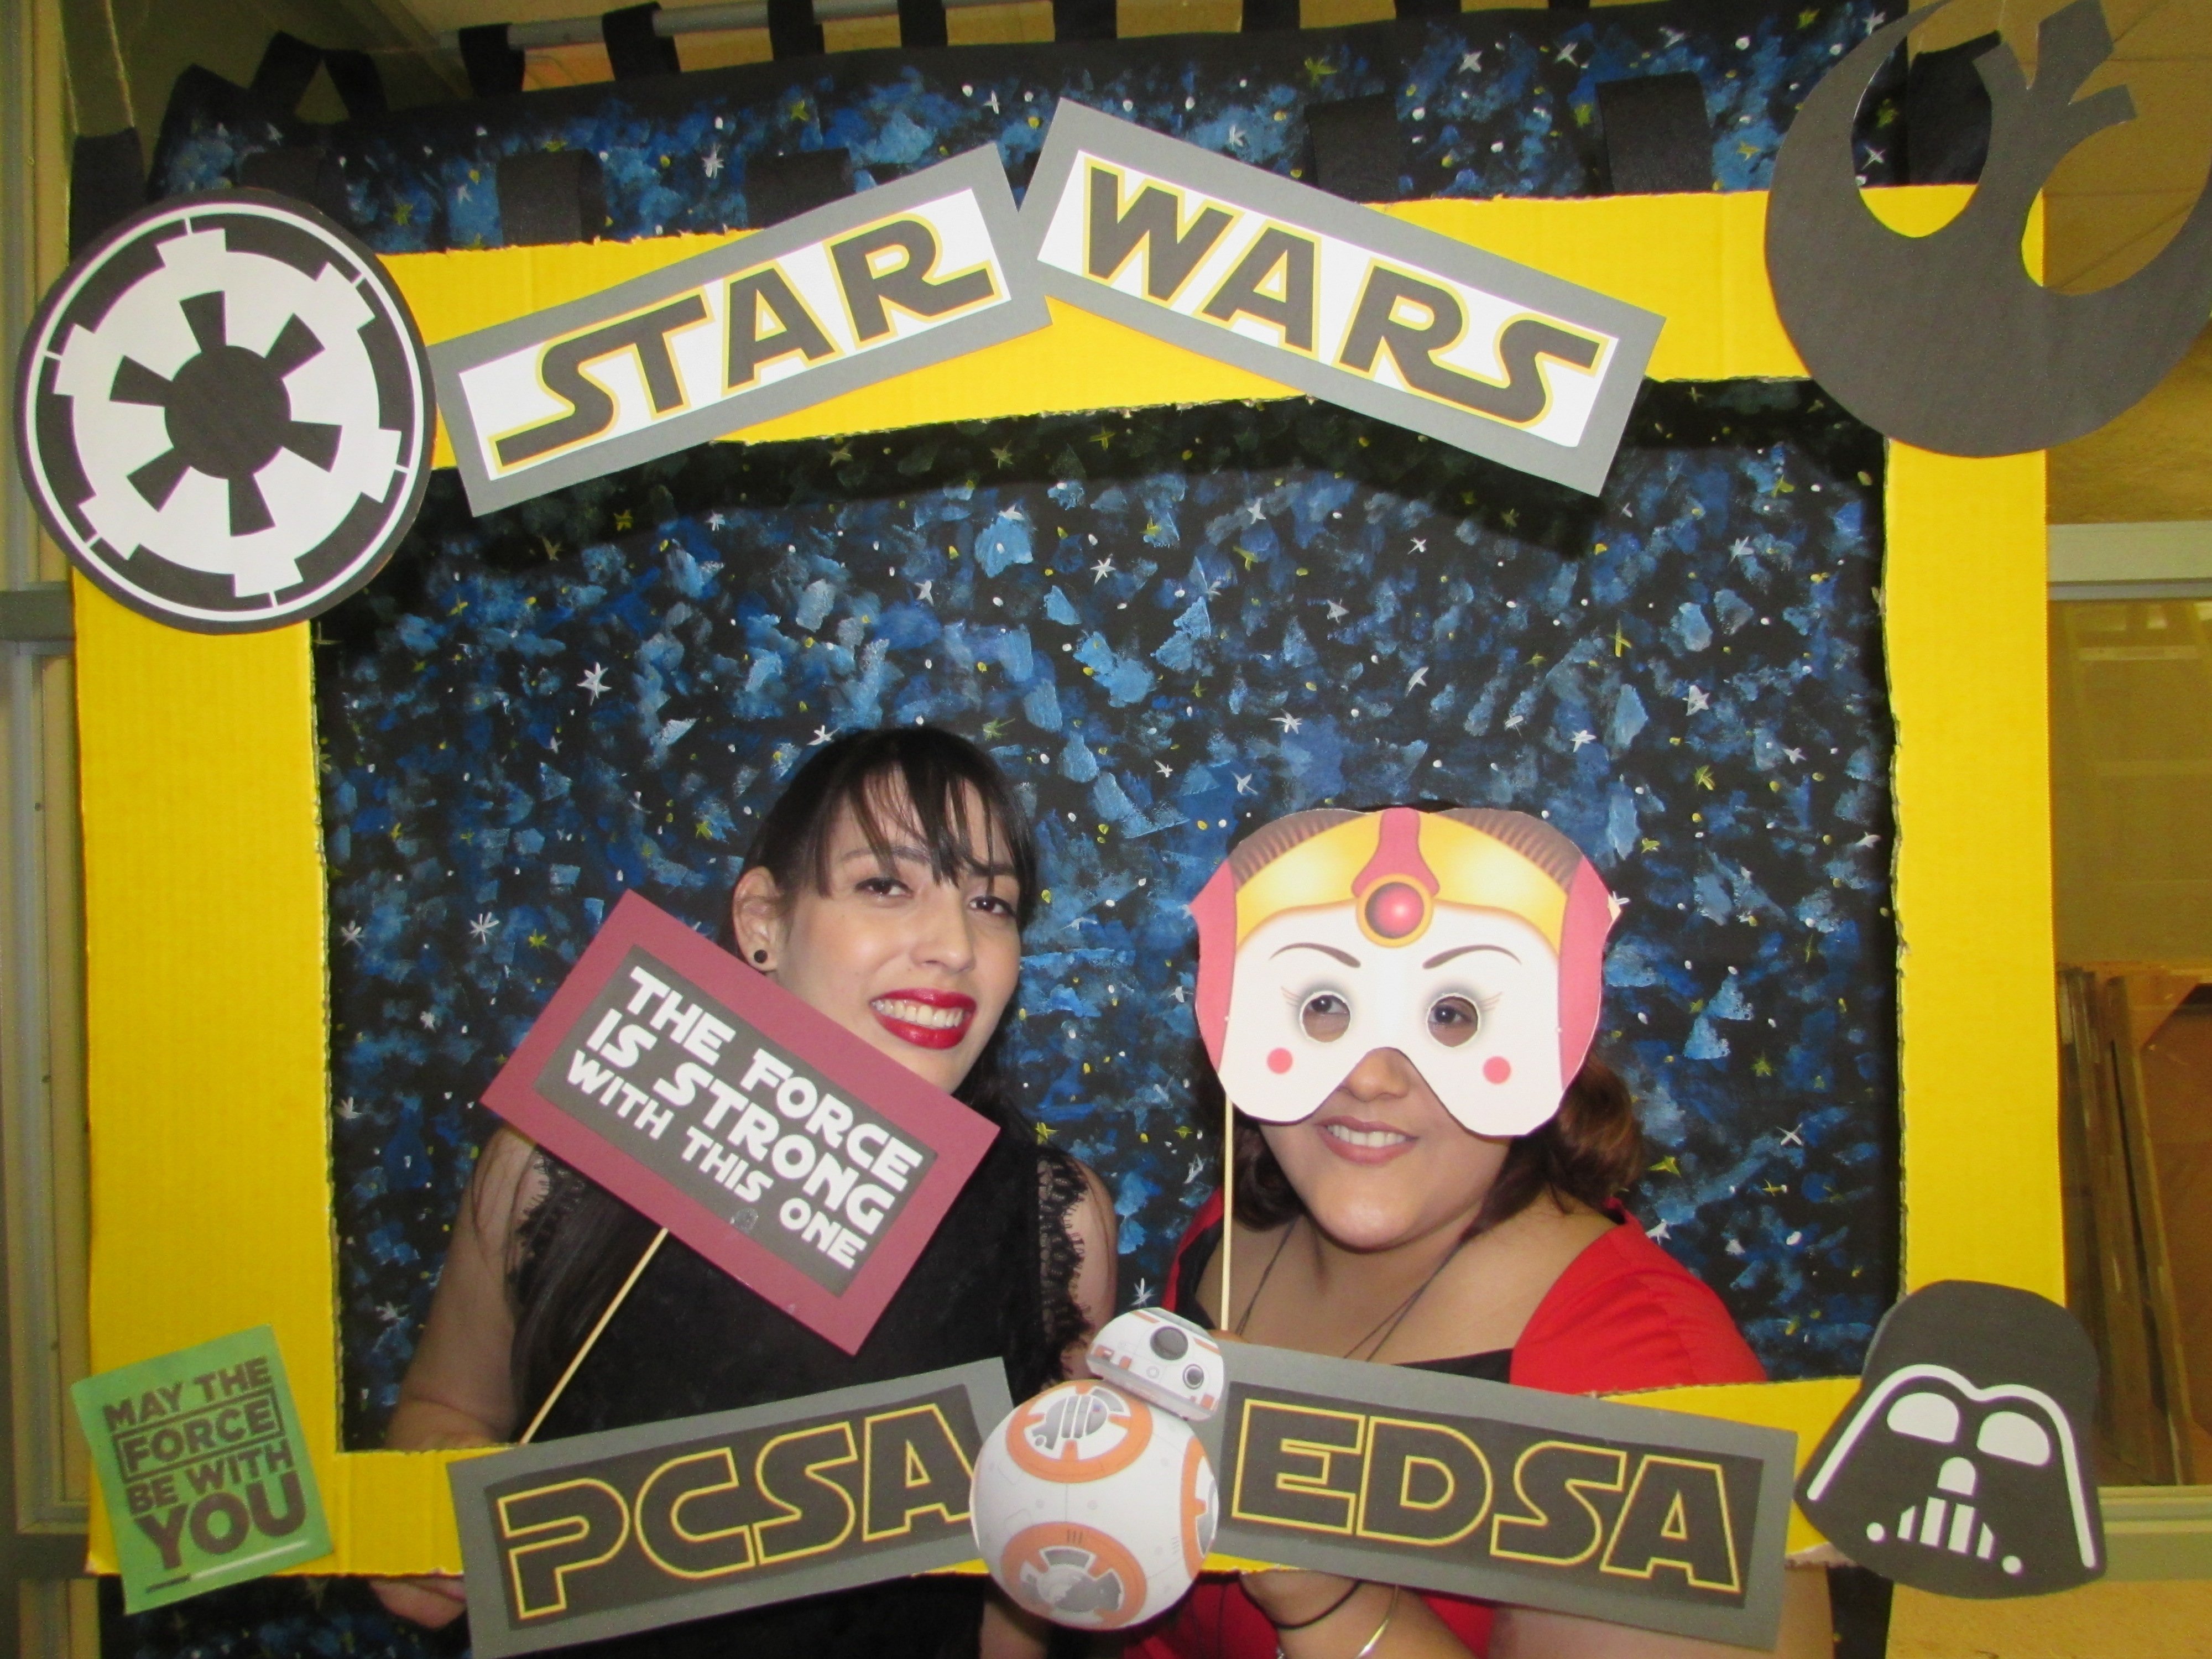 Attendants of the joint activity of May the 4th Be with you by EDSA & PCSA posing for the camera while holding up a promotional frame for PCSA and EDSA and wearing masks.